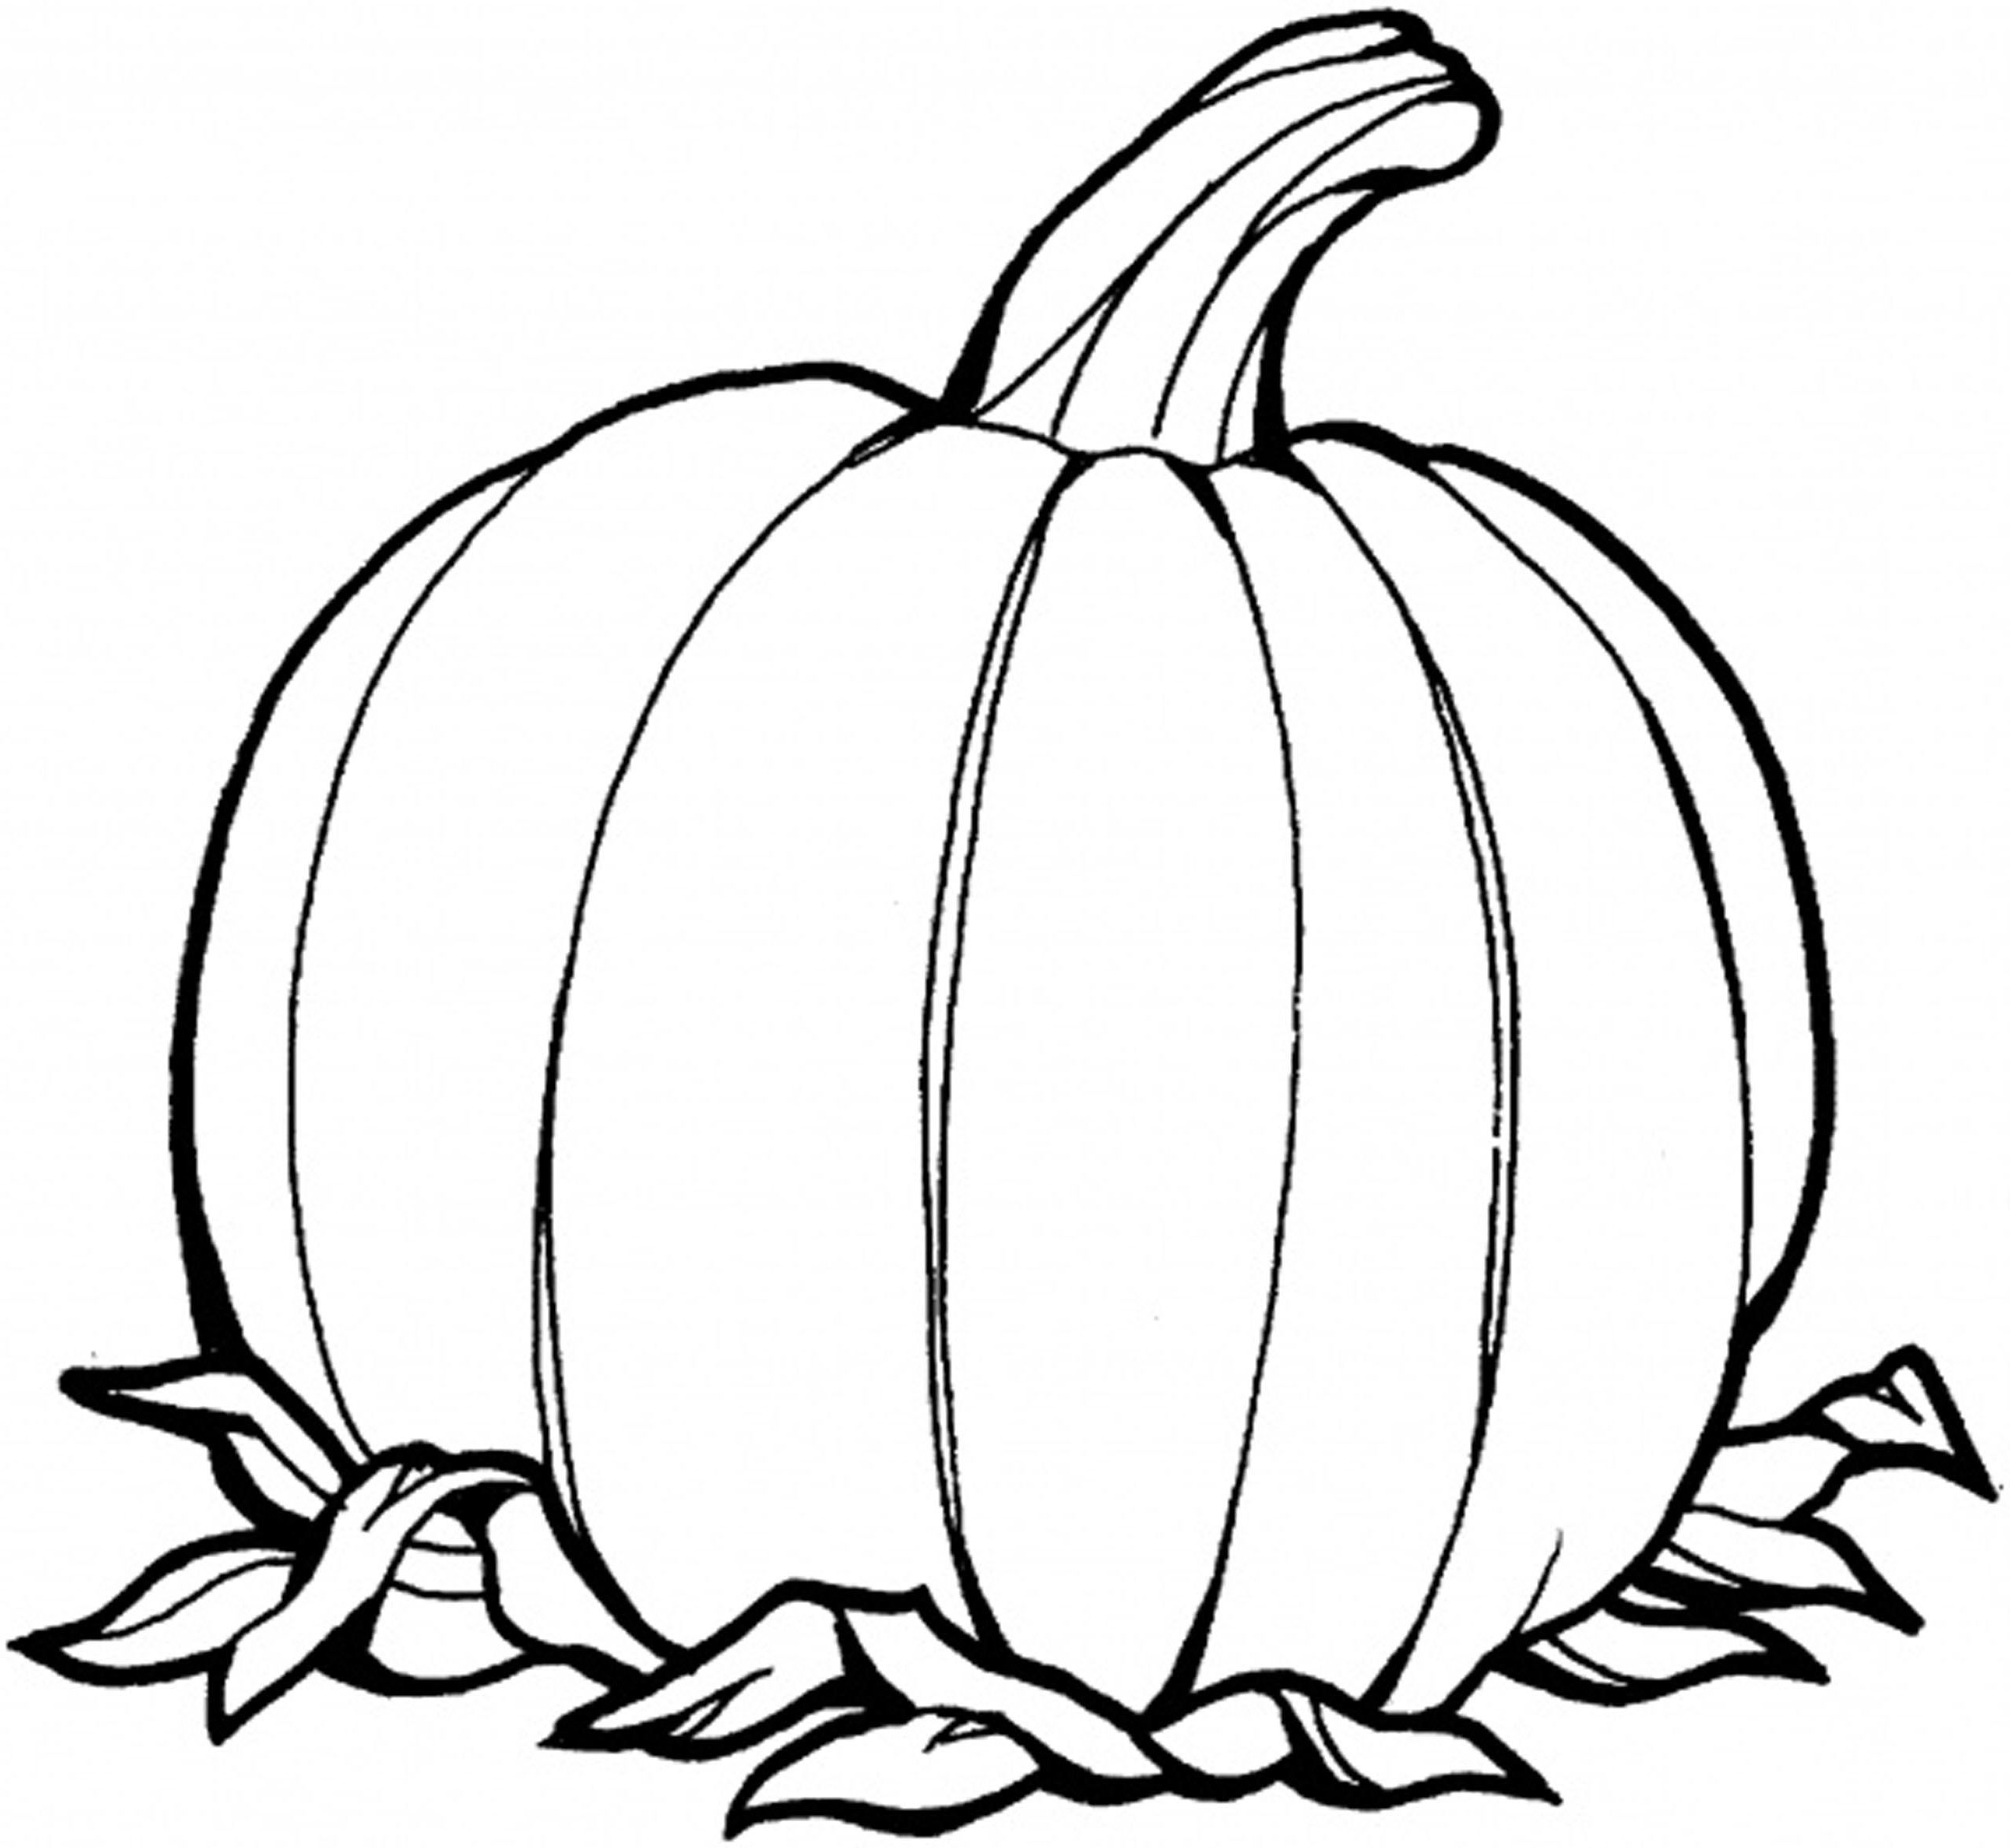 COLORING PAGE PUMPKINS - Coloring Home